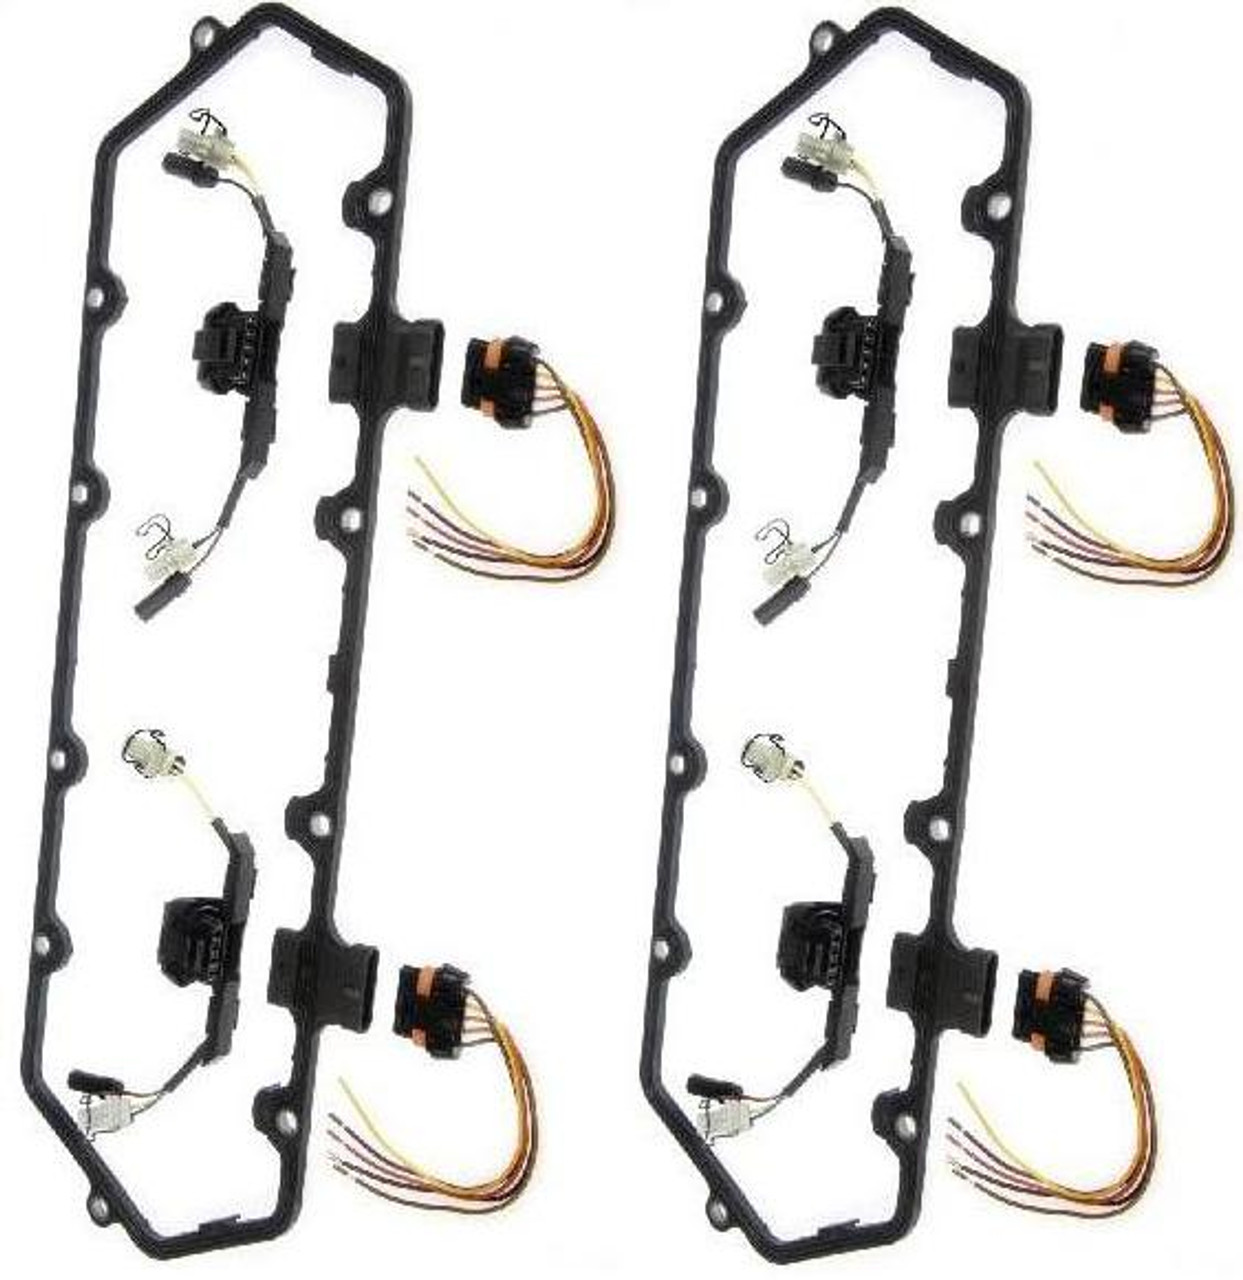 615_202_DUALvalve_cover_gasket_71029.1363116372.1280__91177.1363281390?c=2 dorman 94 97 ford dual valve cover gasket with fuel injector injector wiring harness for 1999 ford 7 3 at virtualis.co